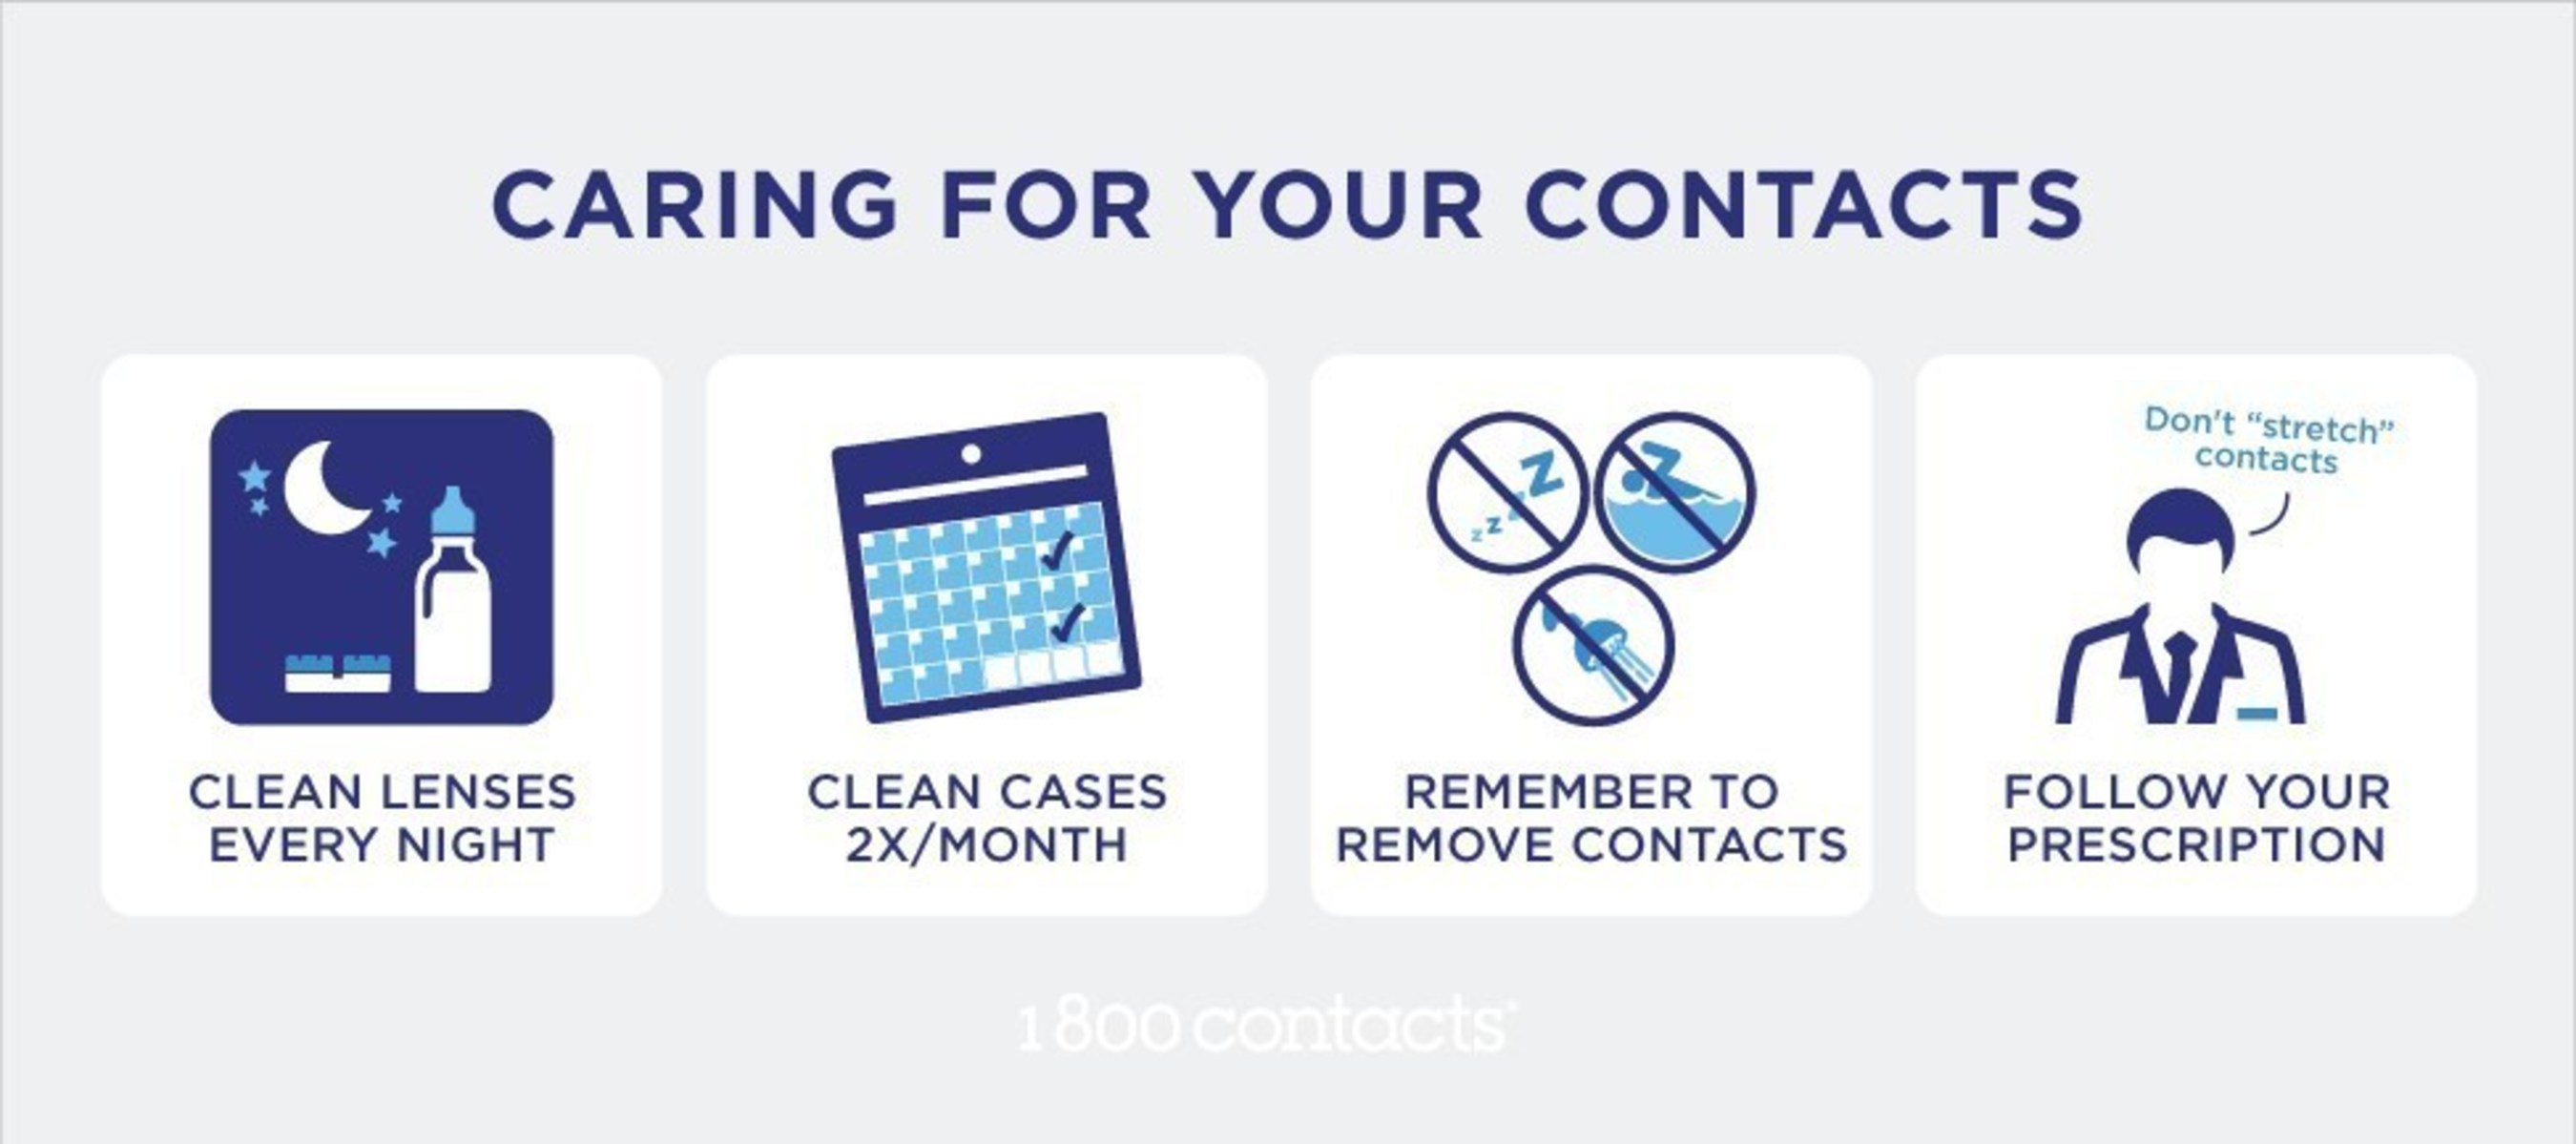 1-800 Contacts Care Tips